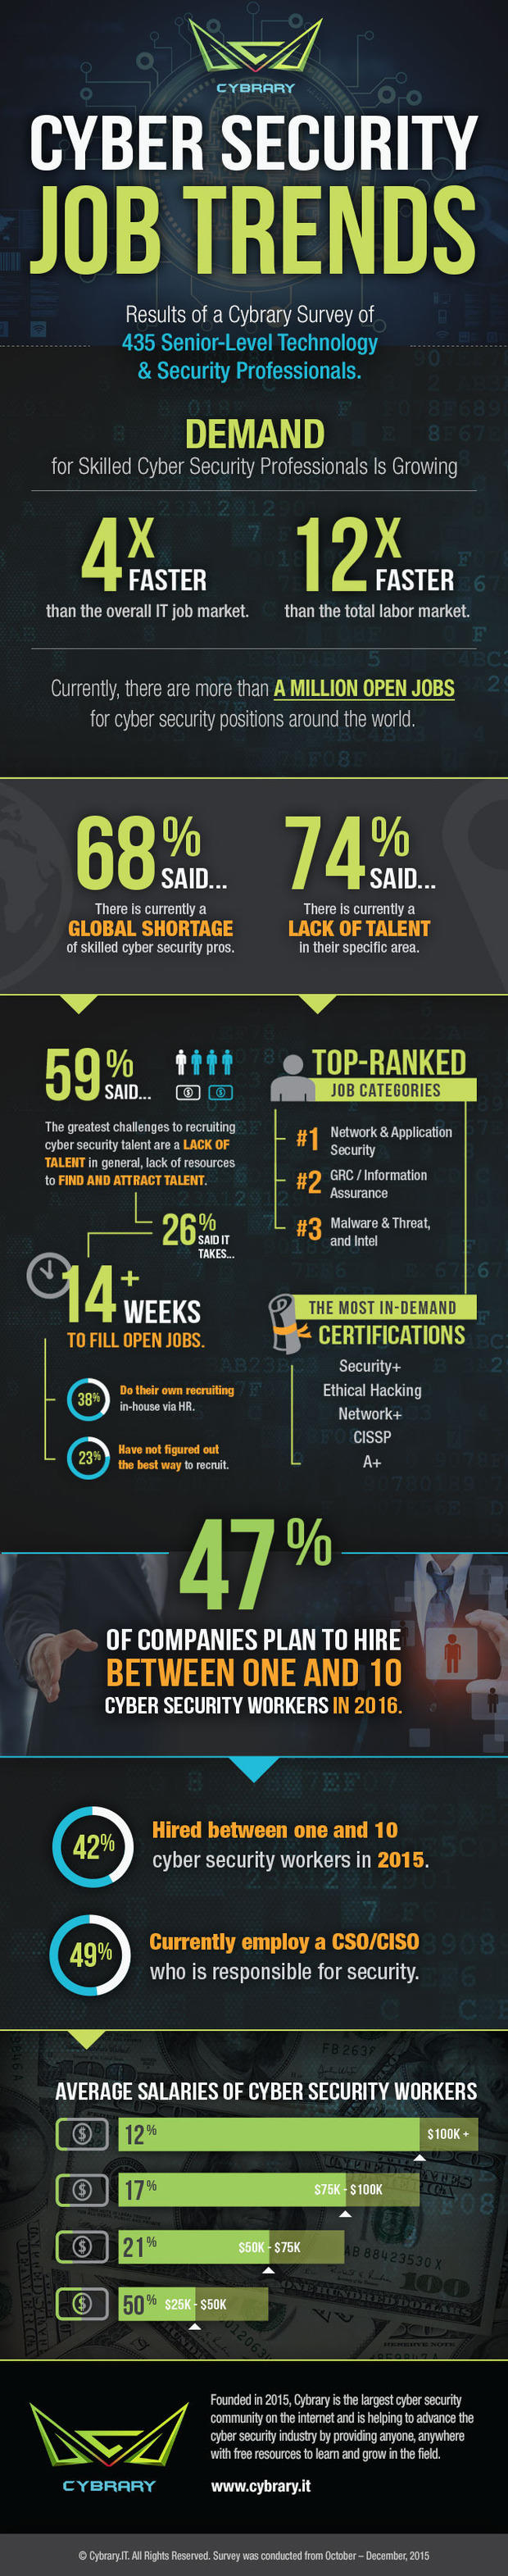 Cyber Security Job Trends